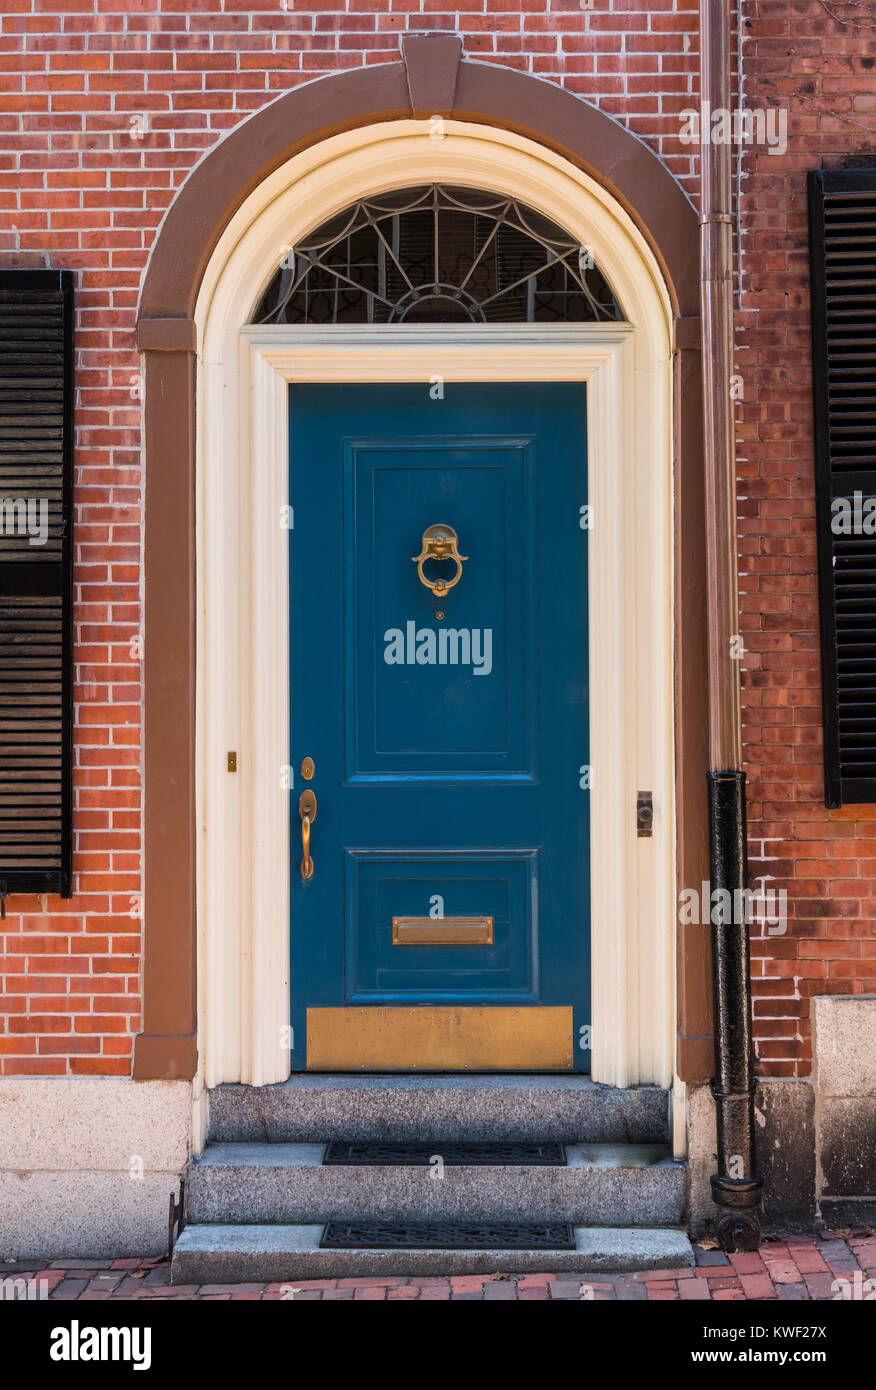 Blue Colonial Door In Arched Frame On Brick Building Stock Photo